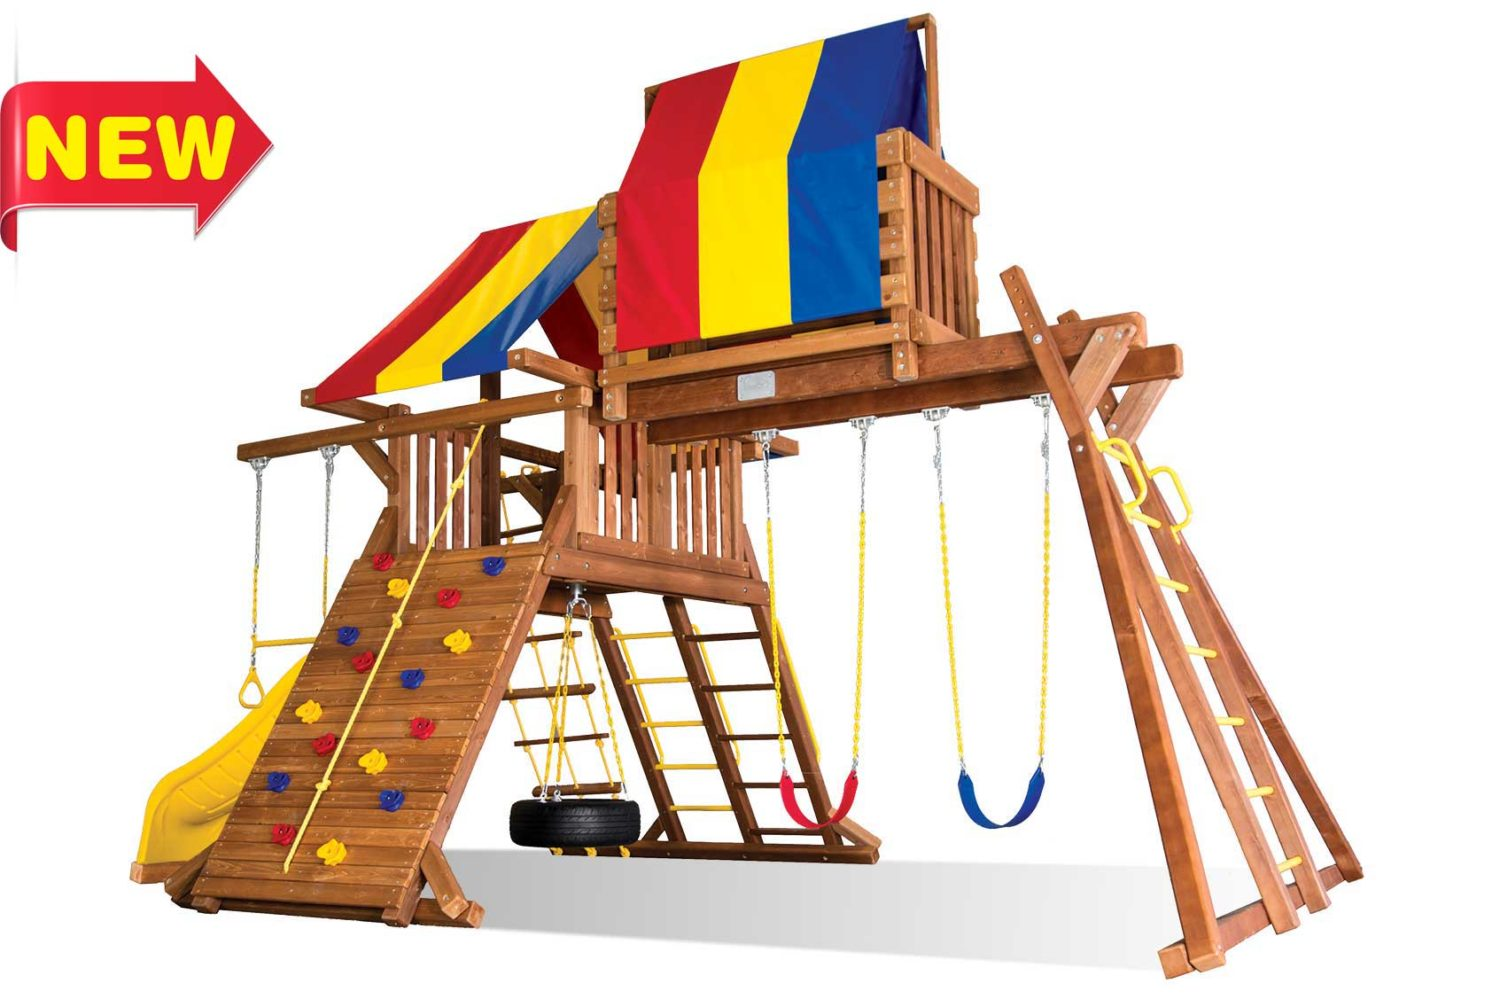 Circus Turbo Castle Wooden Swing Sets